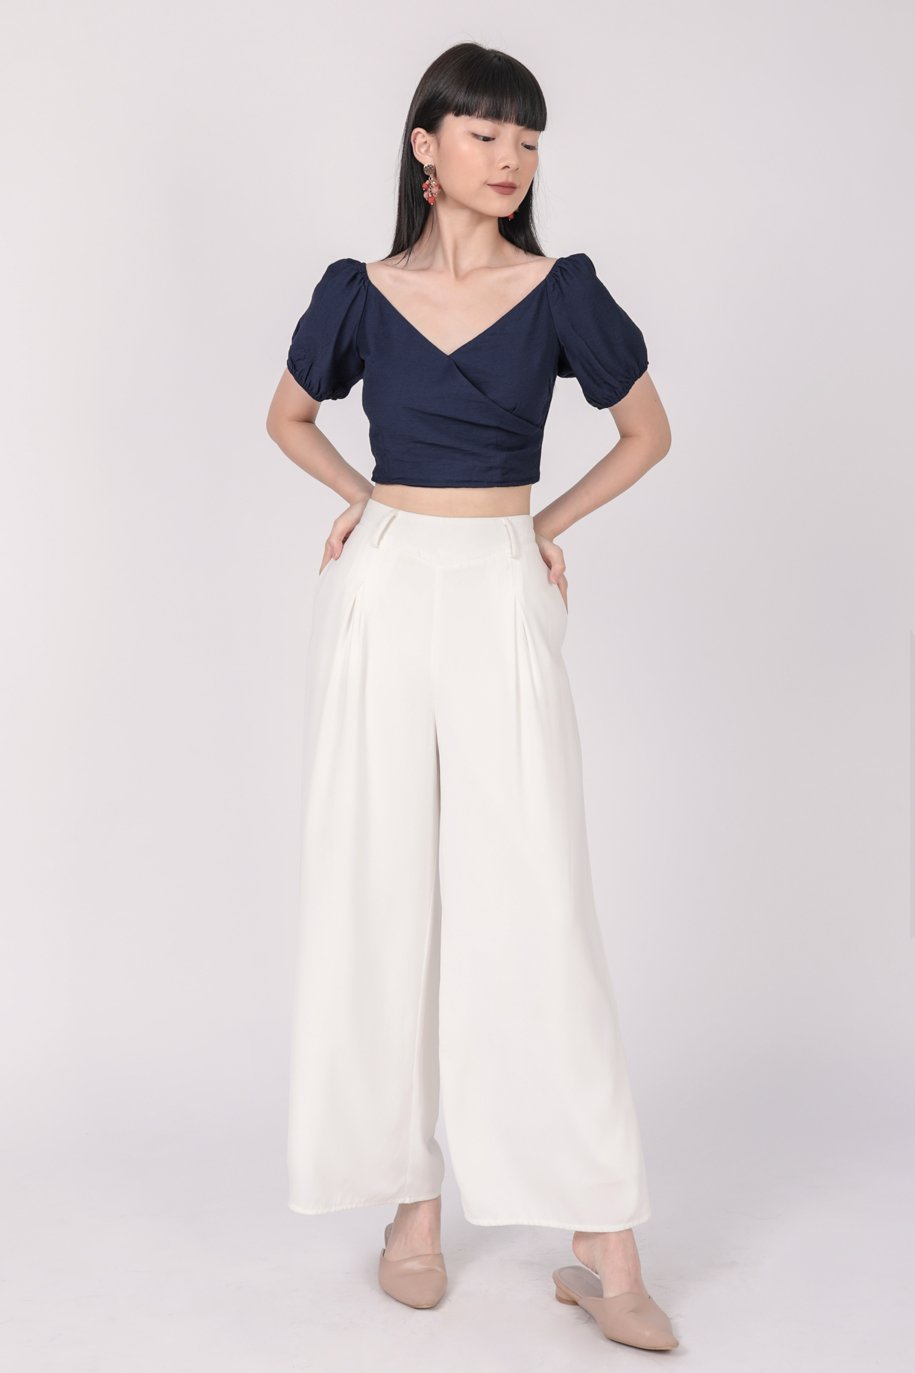 Ace Two Way Top (Navy)